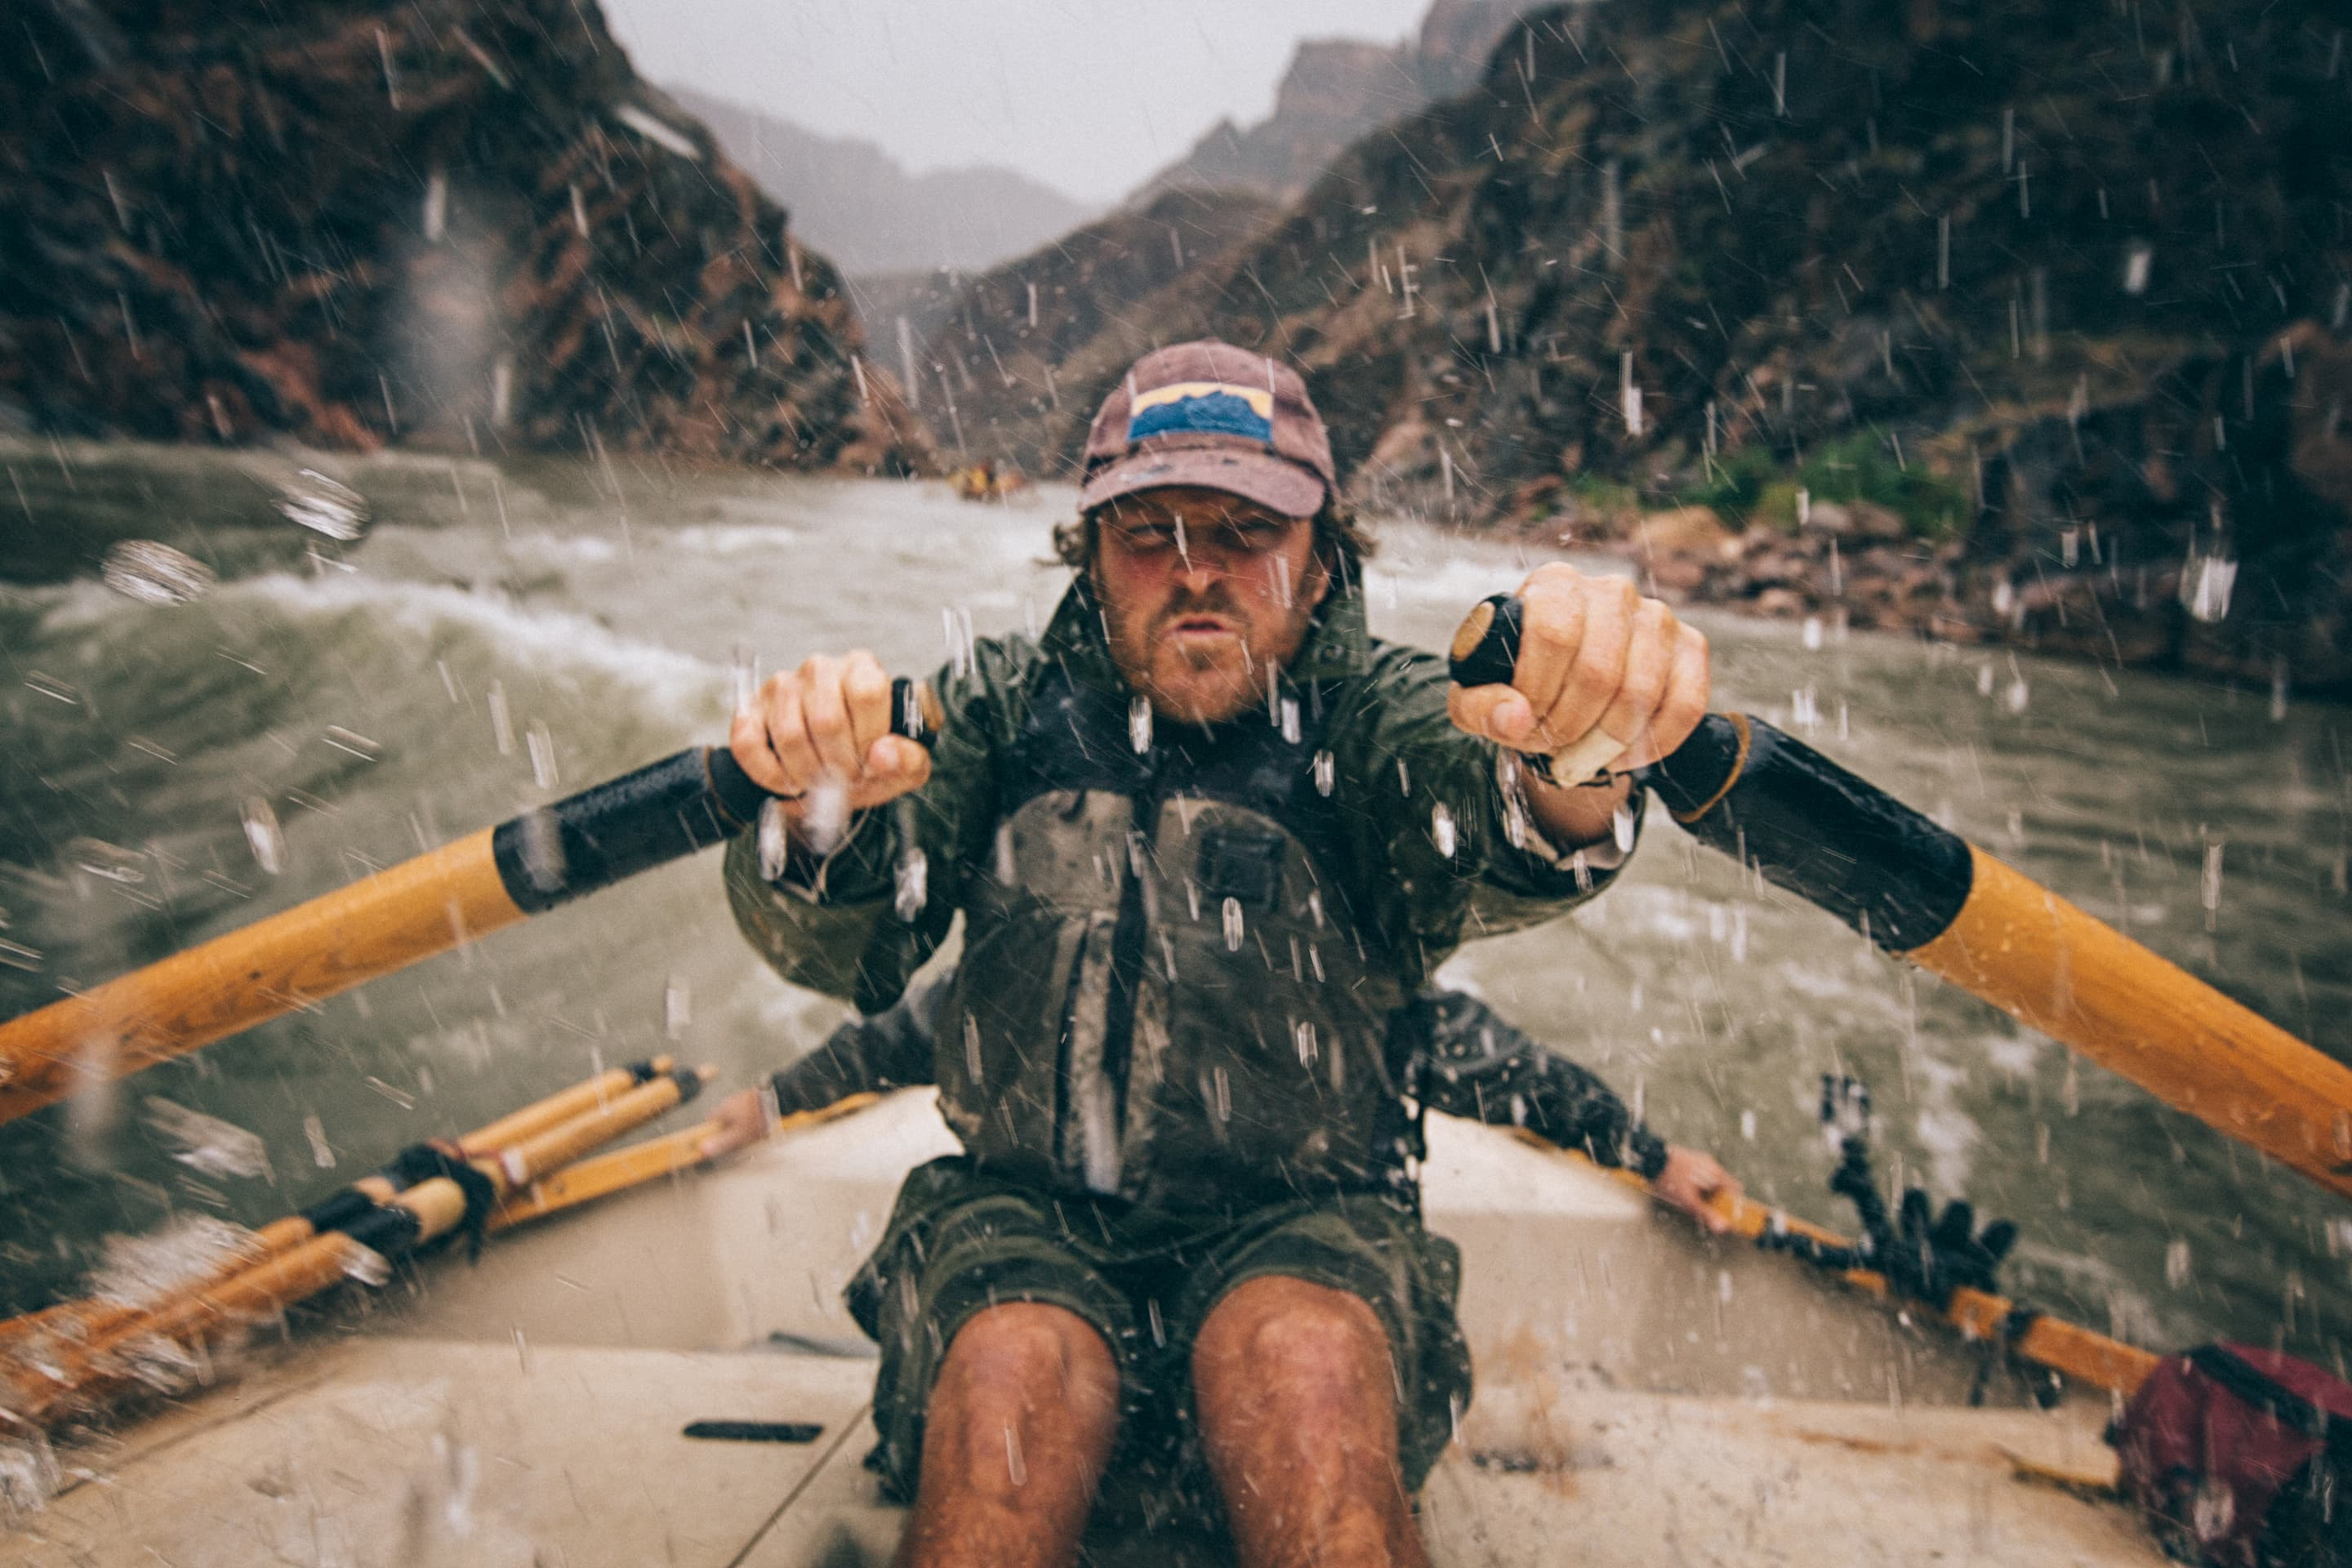 Man rowing in extreme conditions